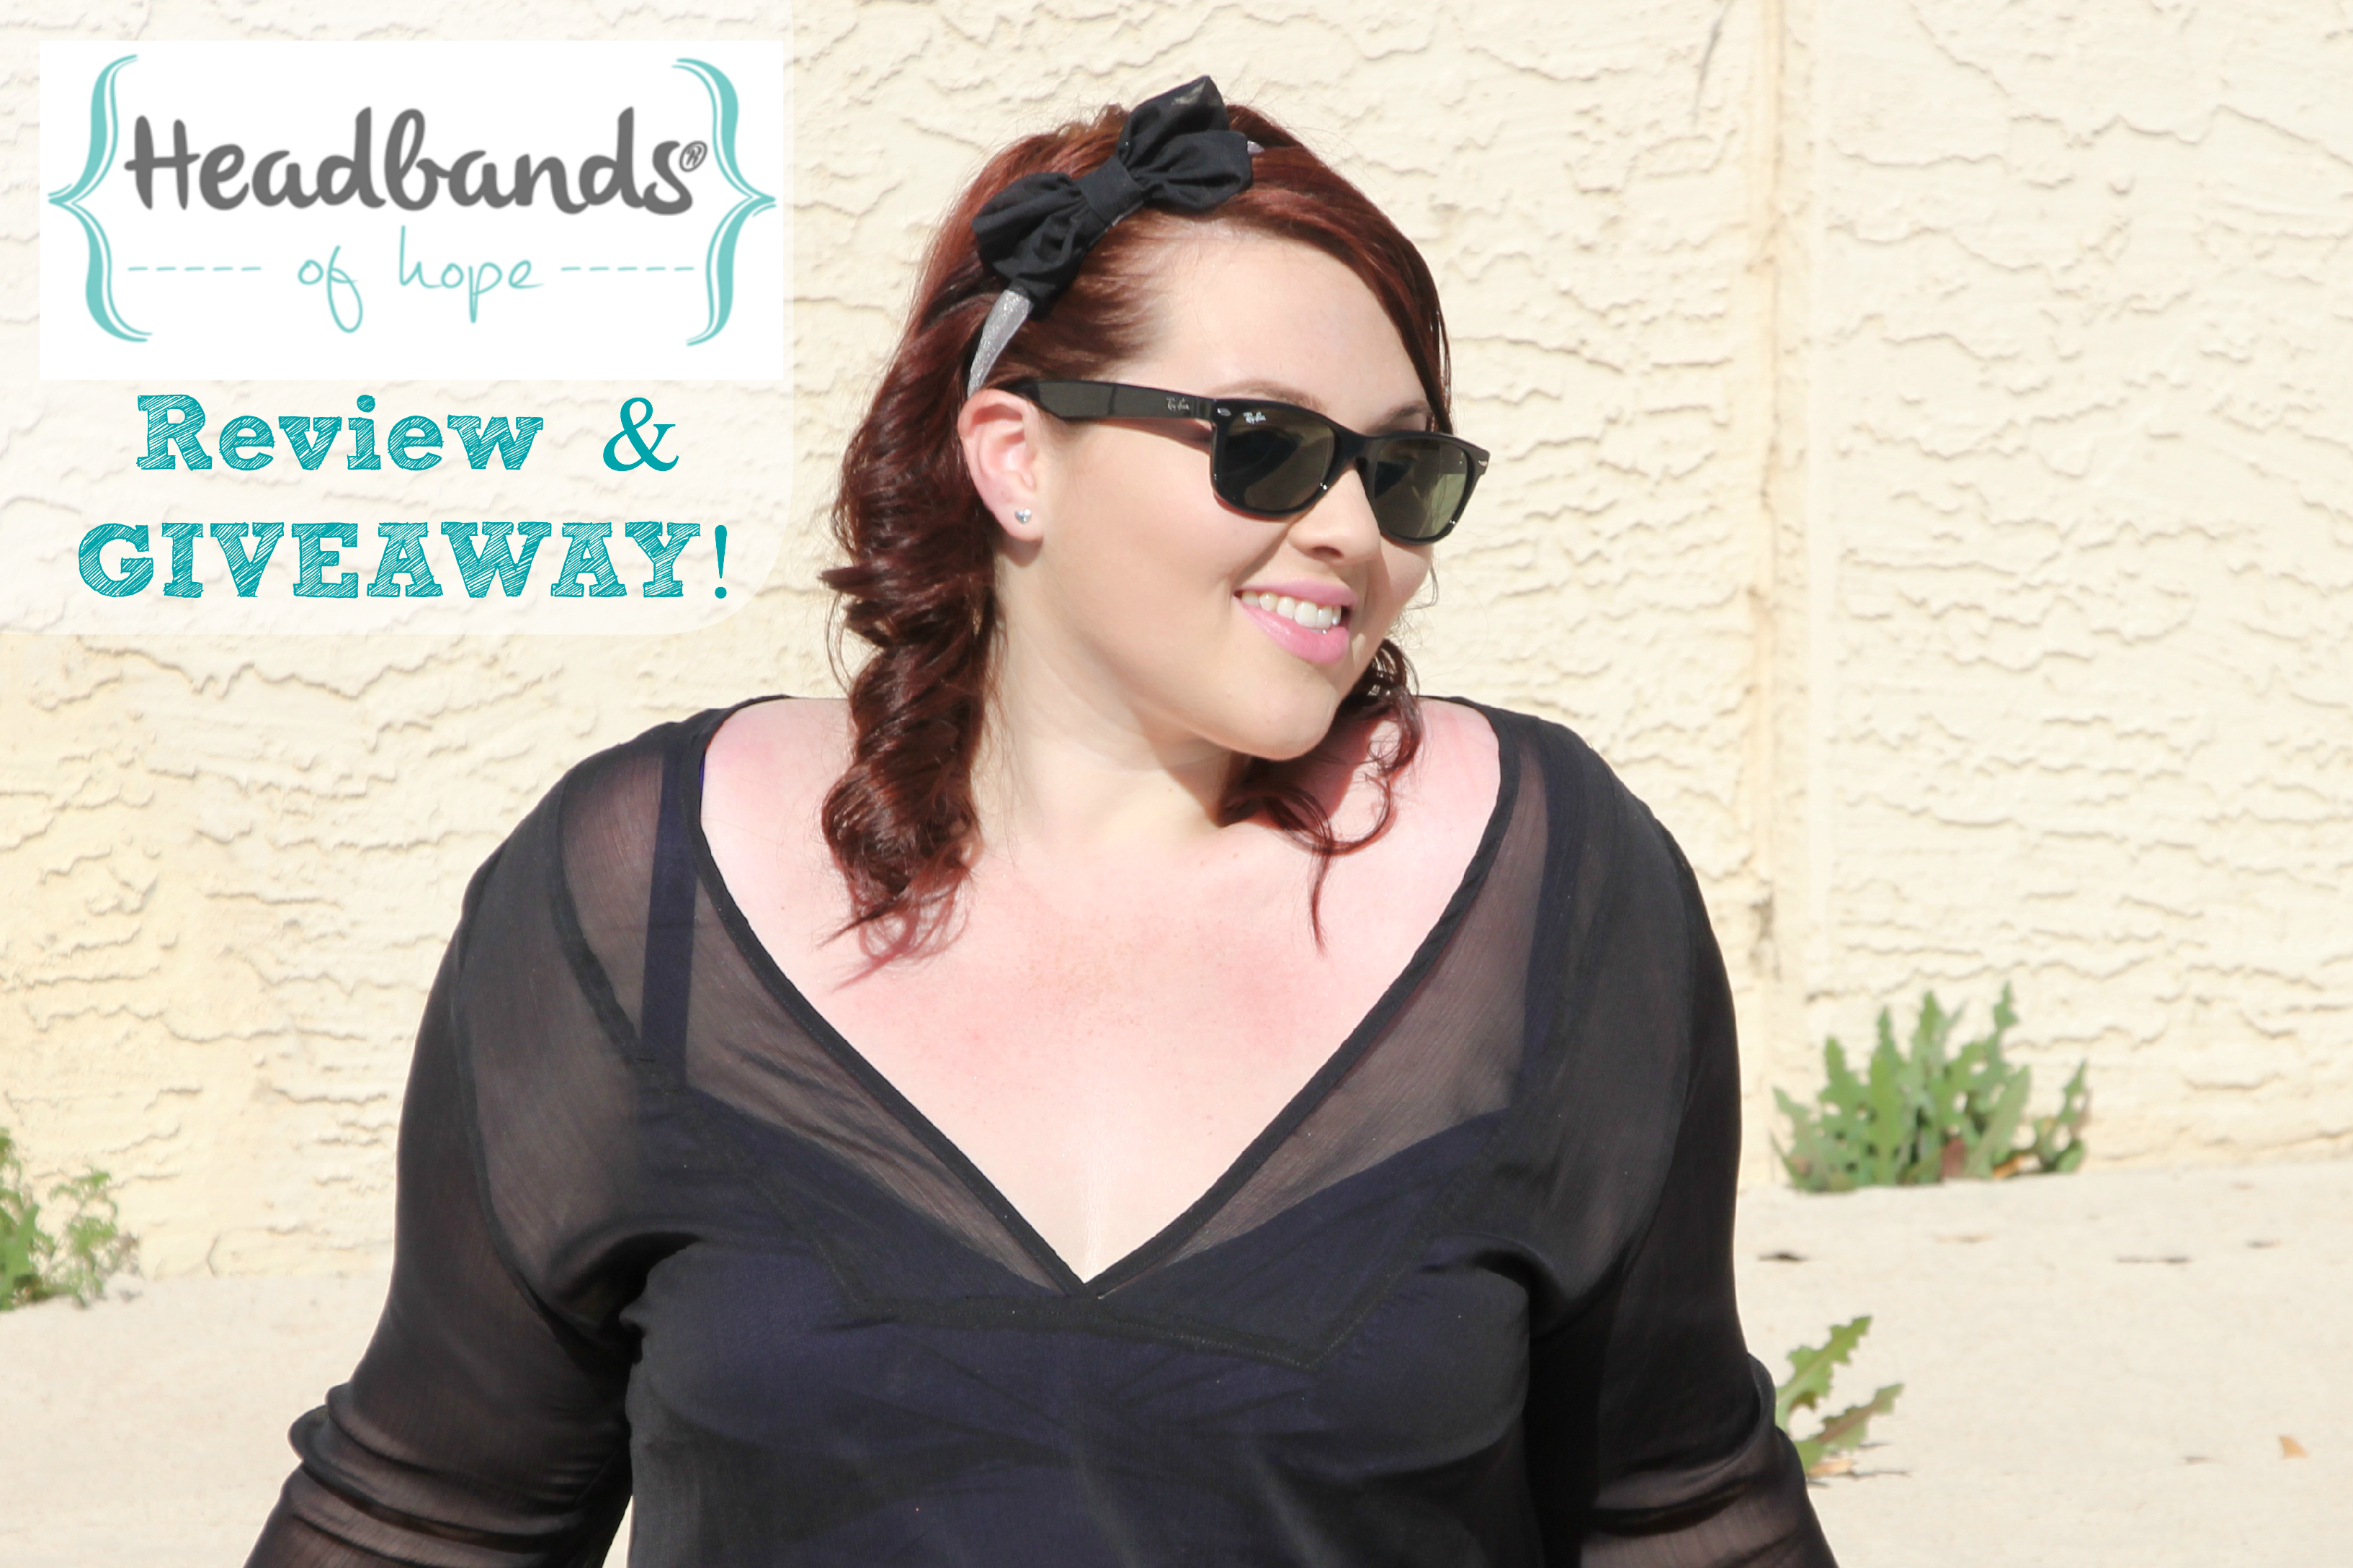 Headbands of Hope Review & Giveaway #WearHope